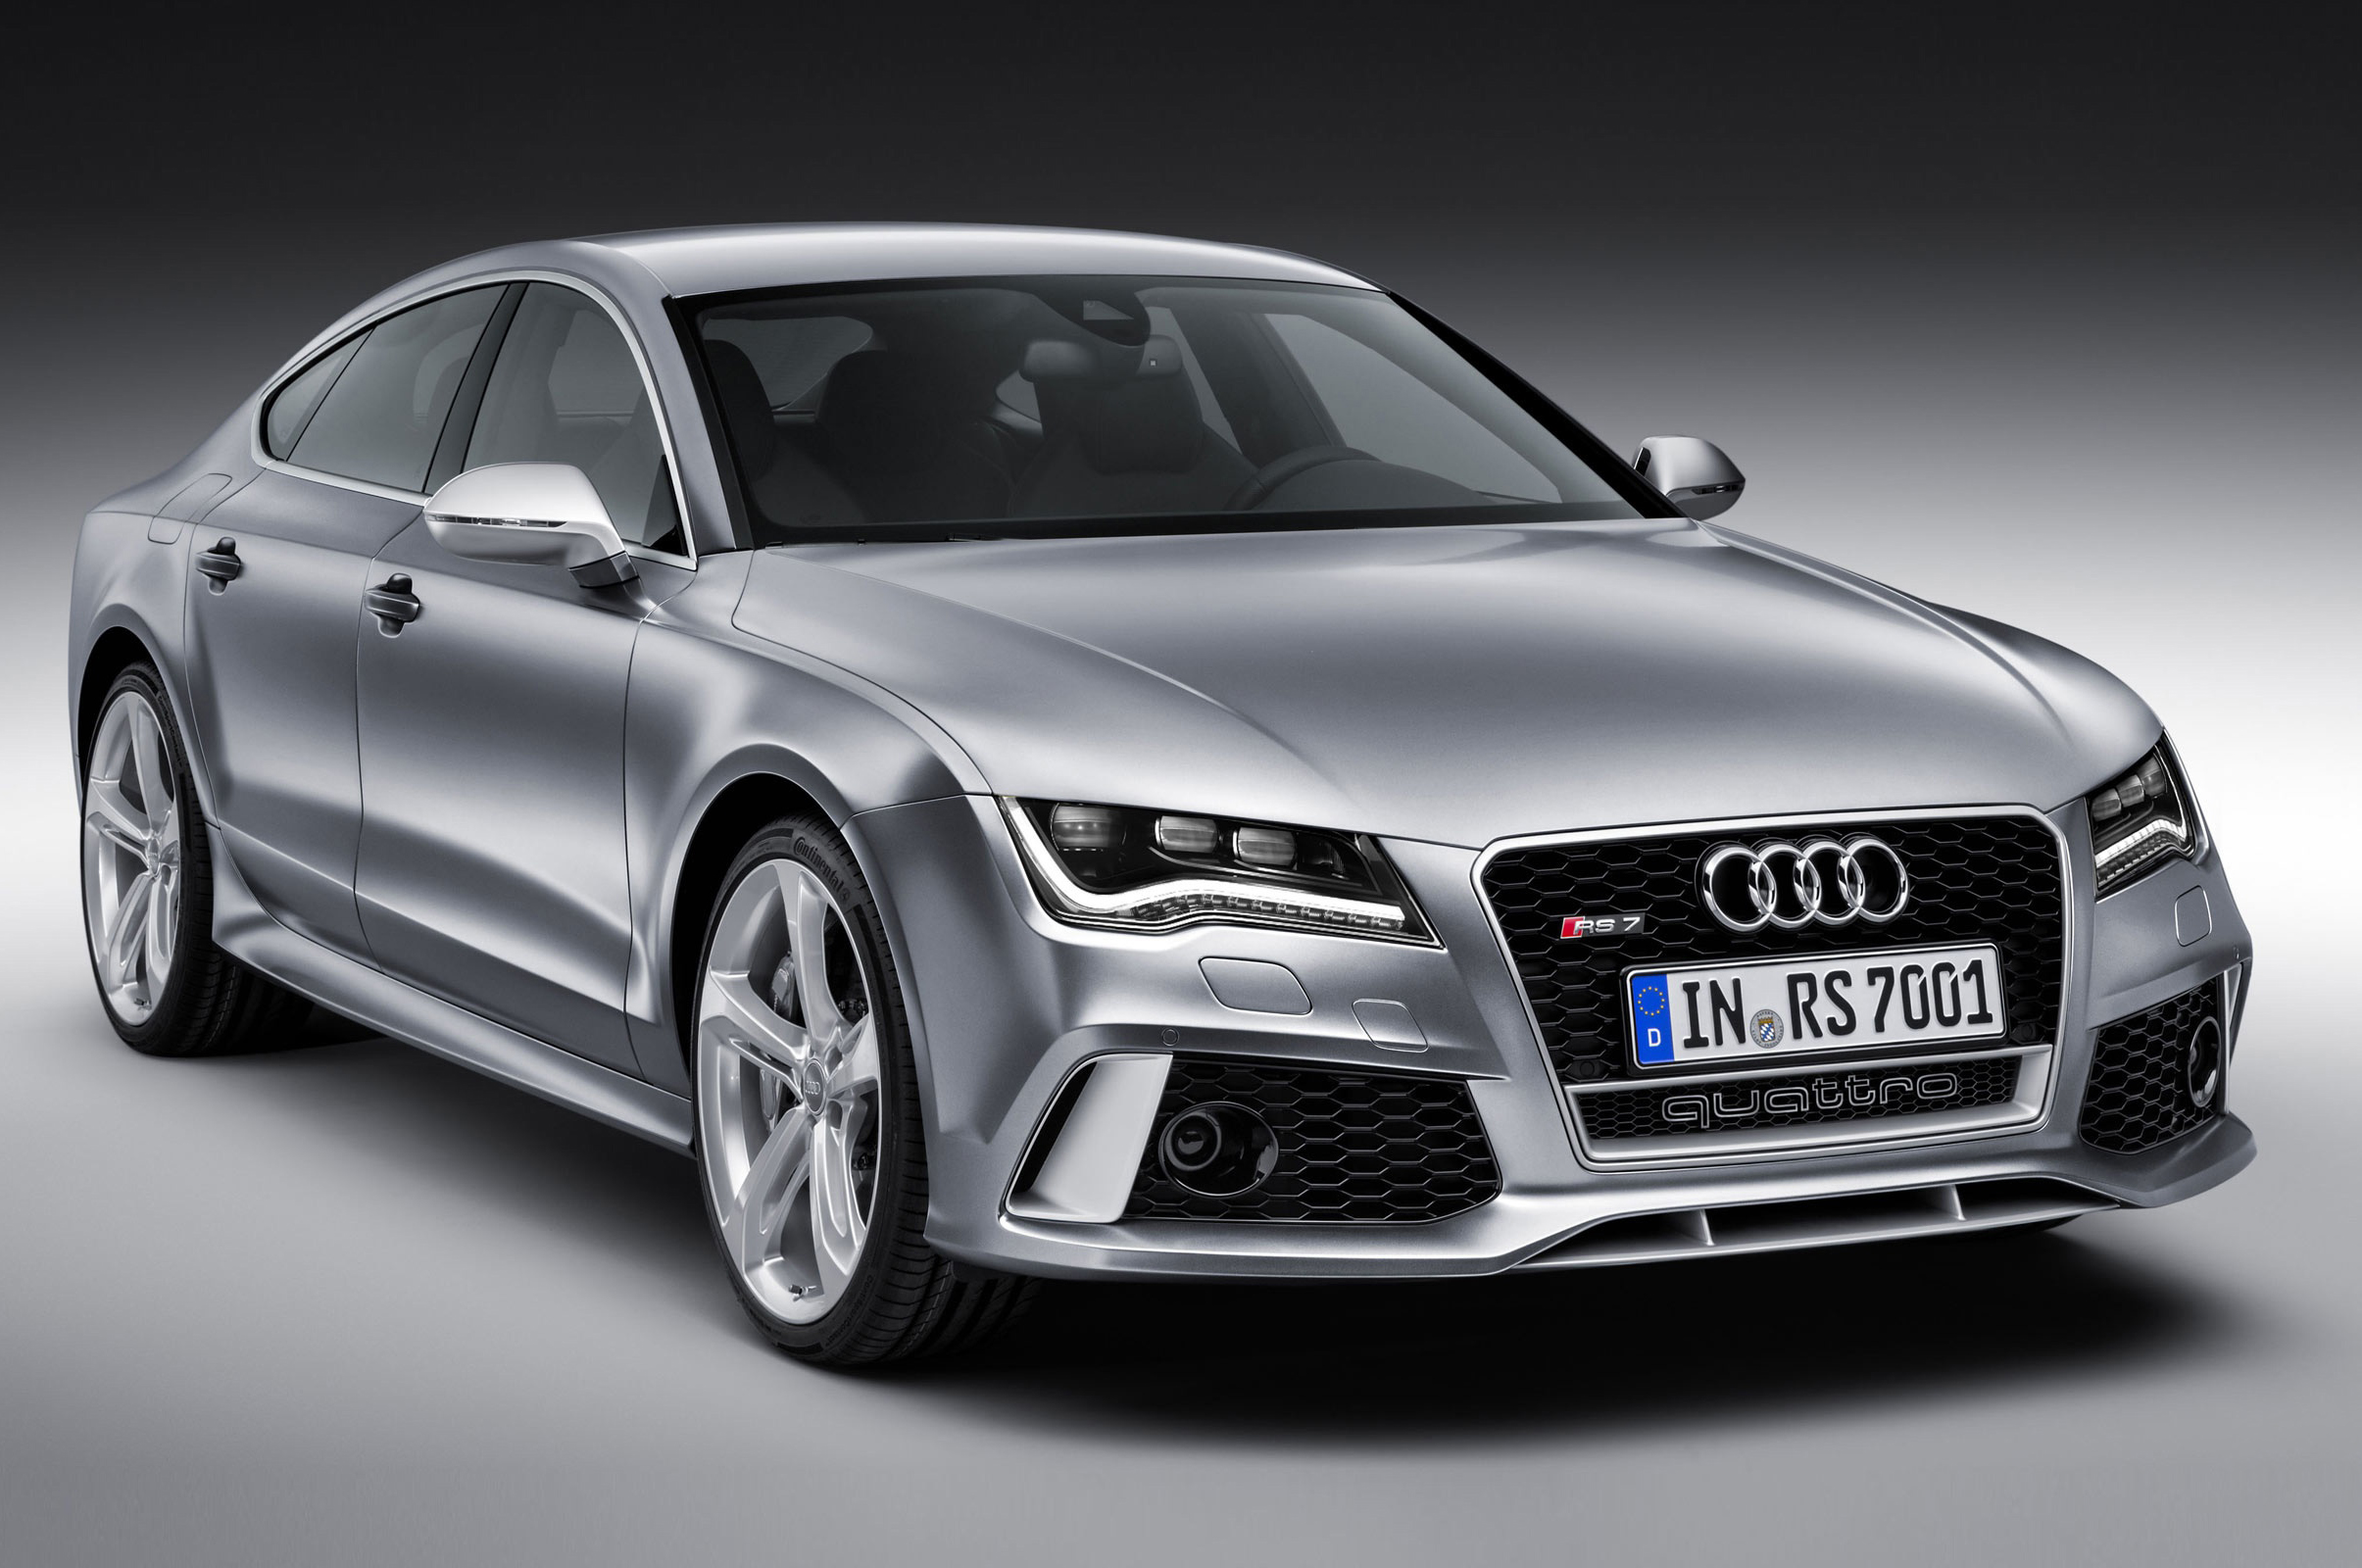 Silver Audi Front Look 413.42 Kb